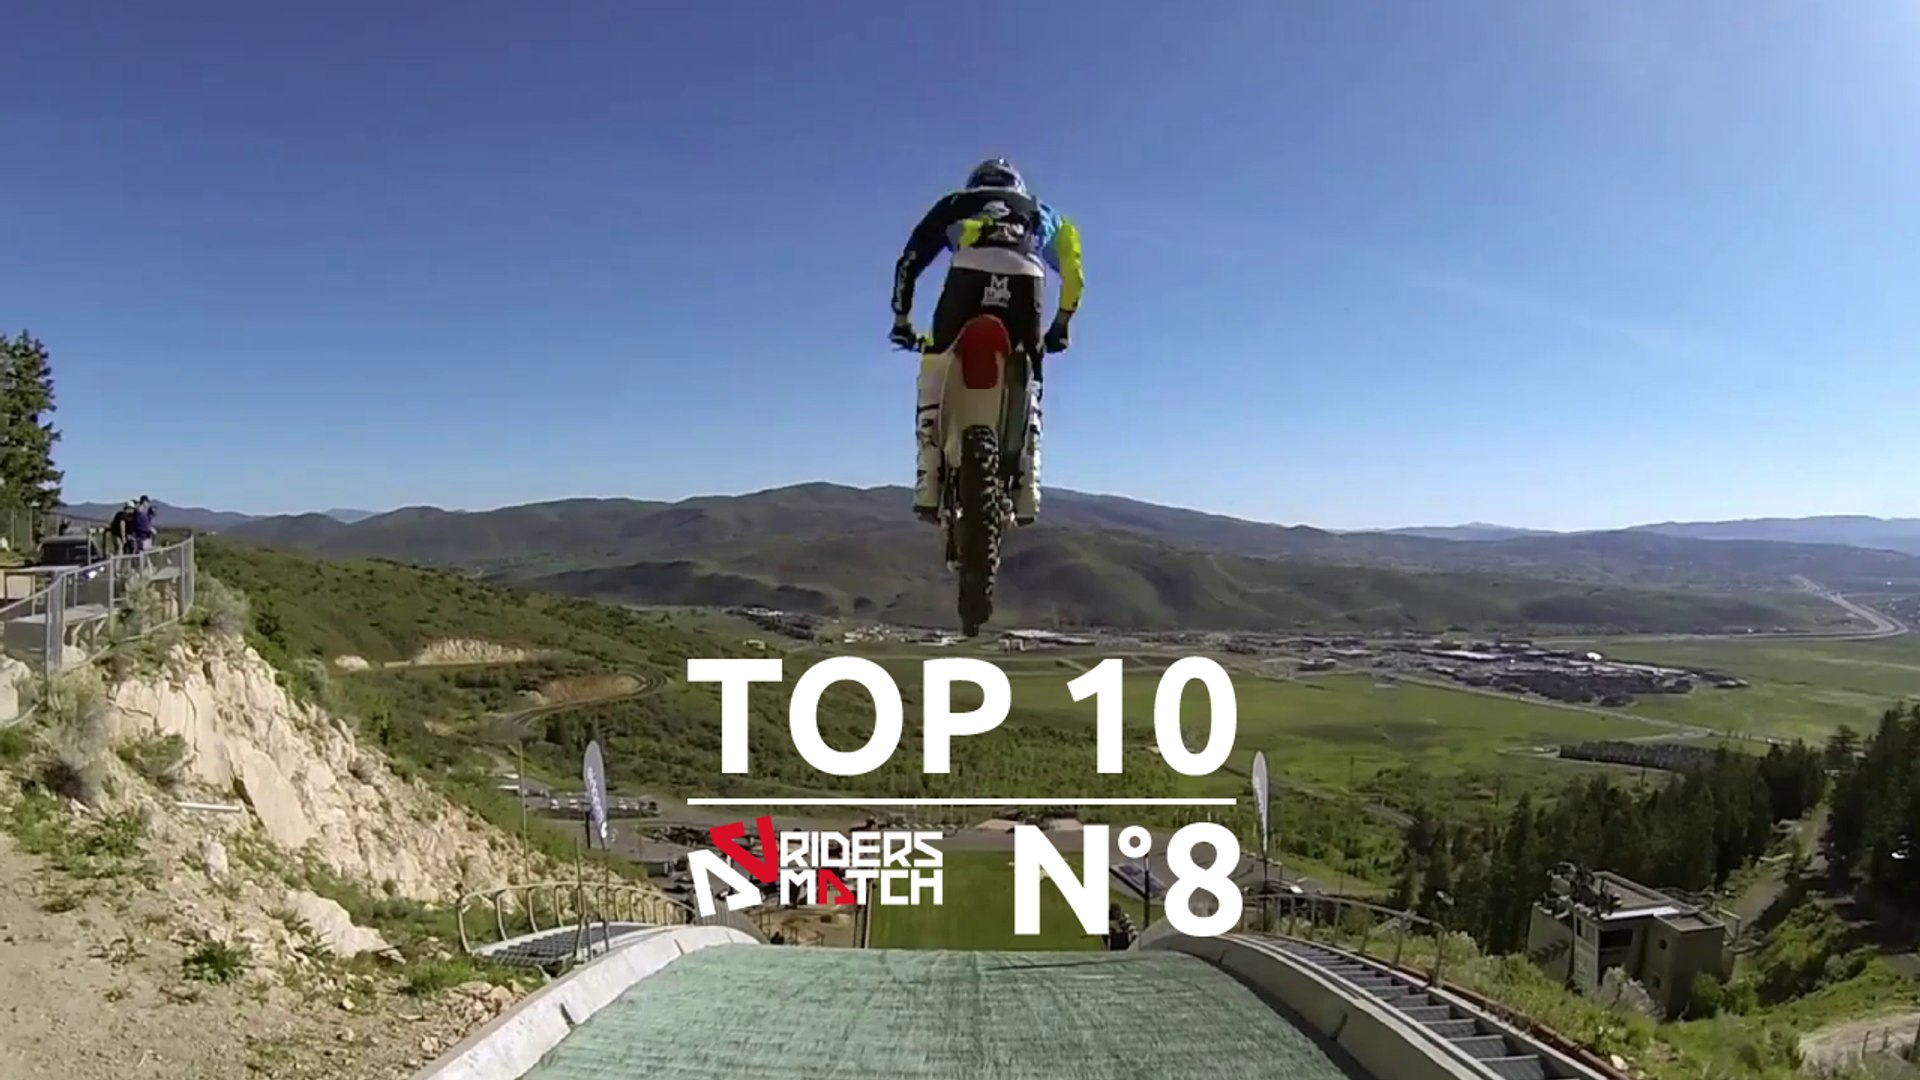 Extreme Sports Videos Top 10 TOP 10 N°8! MOTO CROSS, SKI, SKATE, SLACKLINE, SNOWBOARD, WINGSUIT, BMX